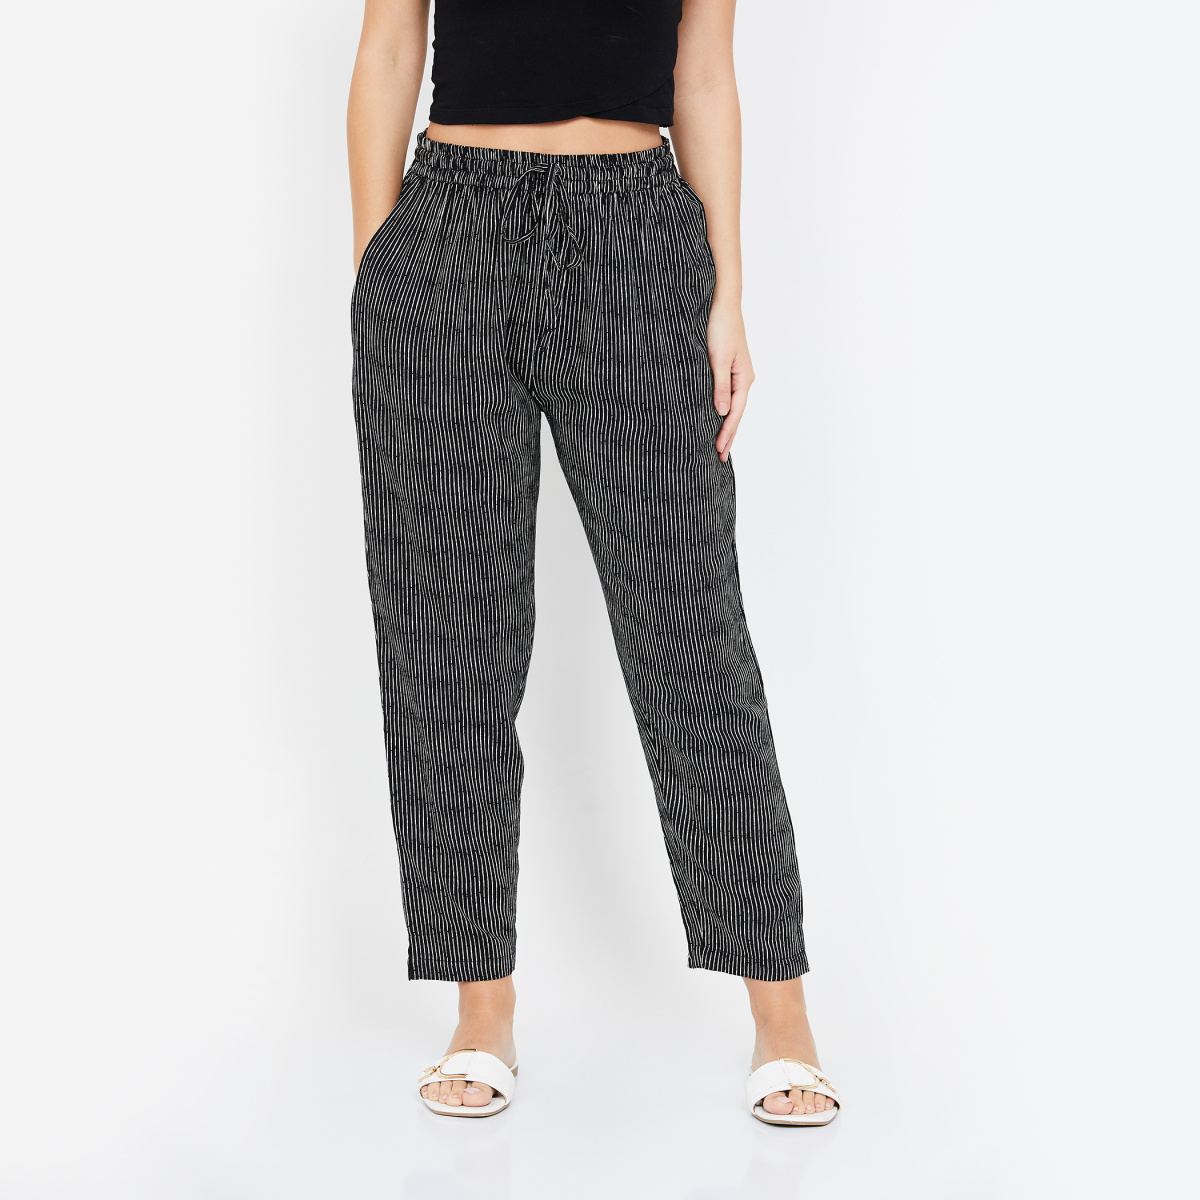 AMUKTI Striped Woven Pants